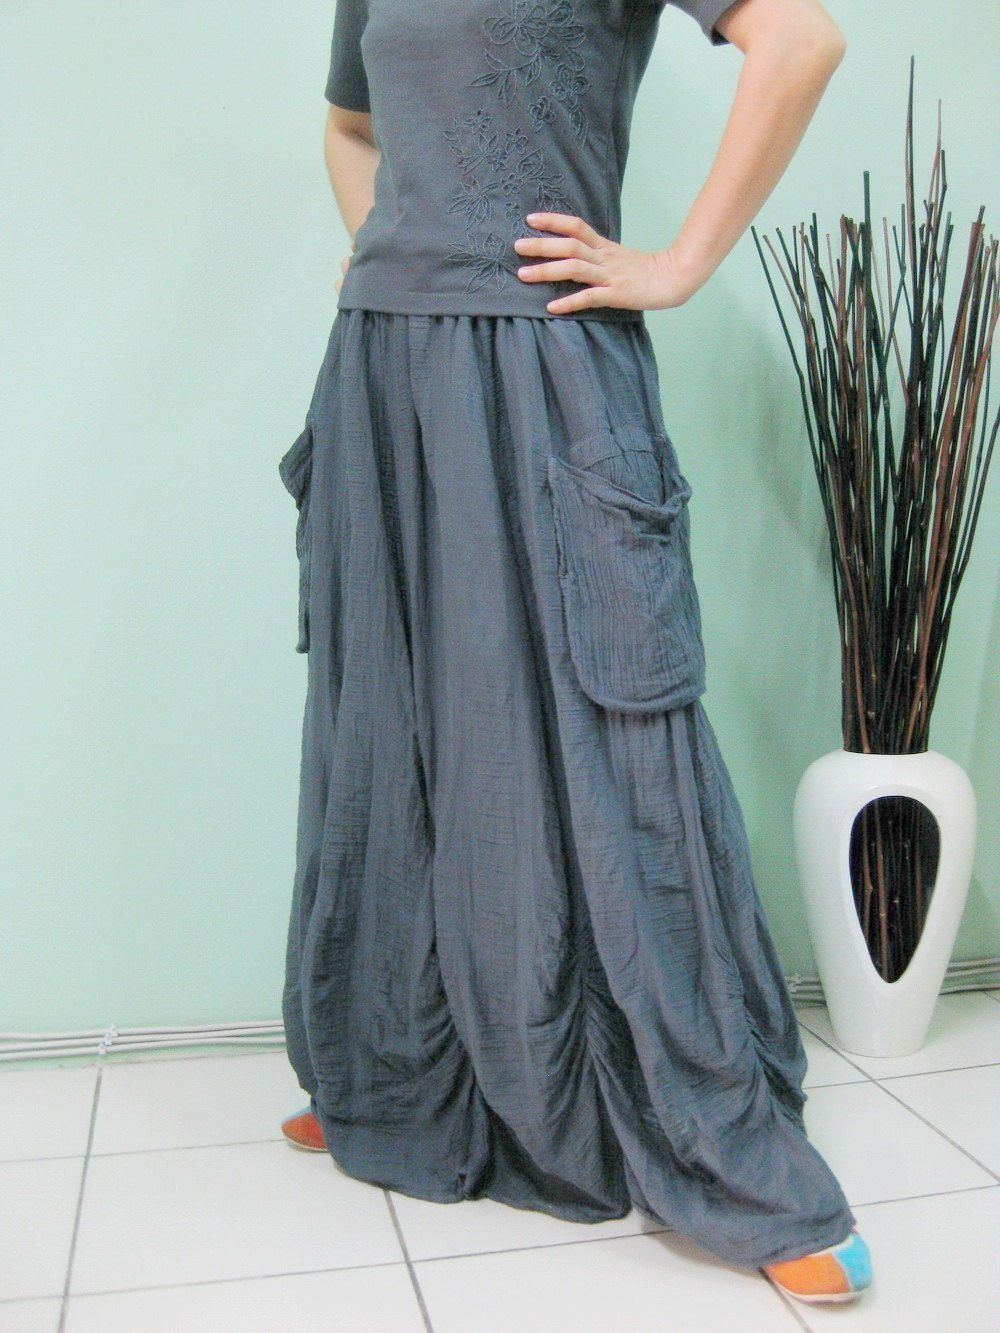 PLUS SIZE SKIRT...Bring Me To The Moon by beyondclothing